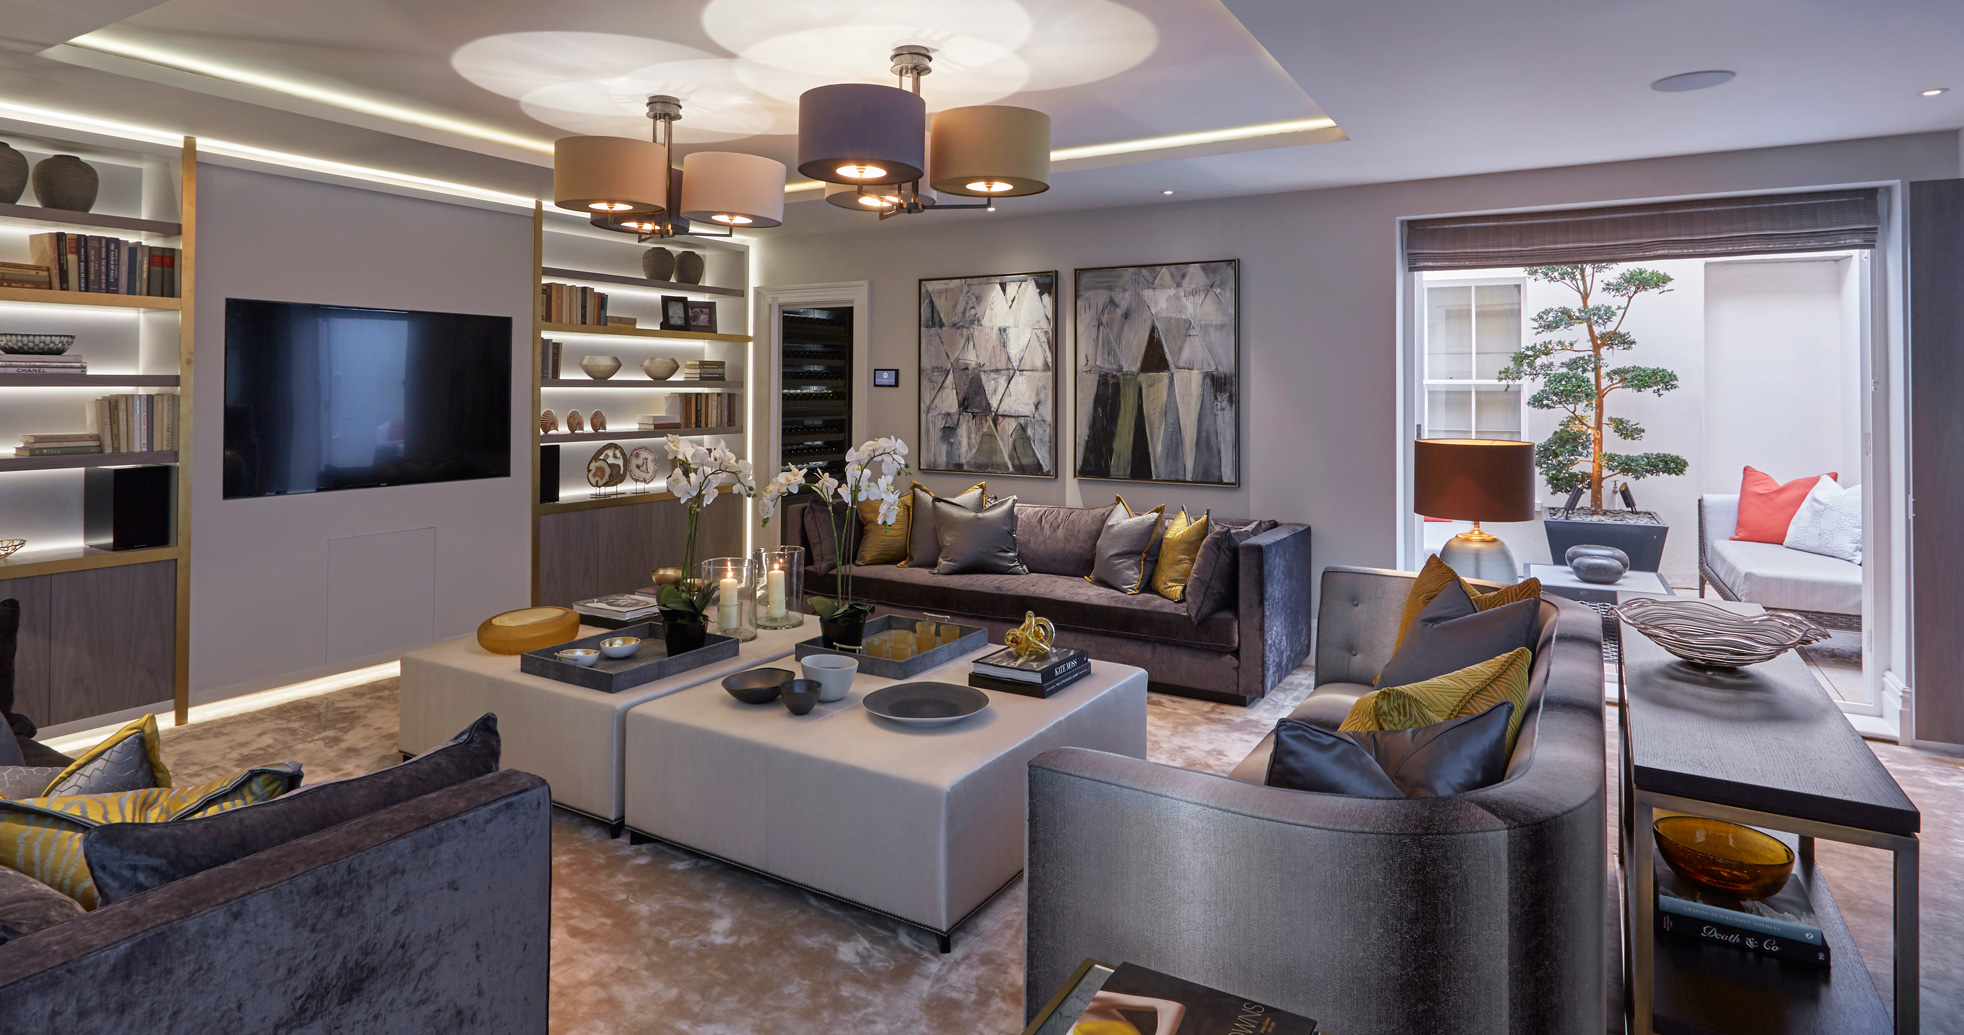 The family room at Wilton Street. Layer your lighting and invest in some paintings if you can